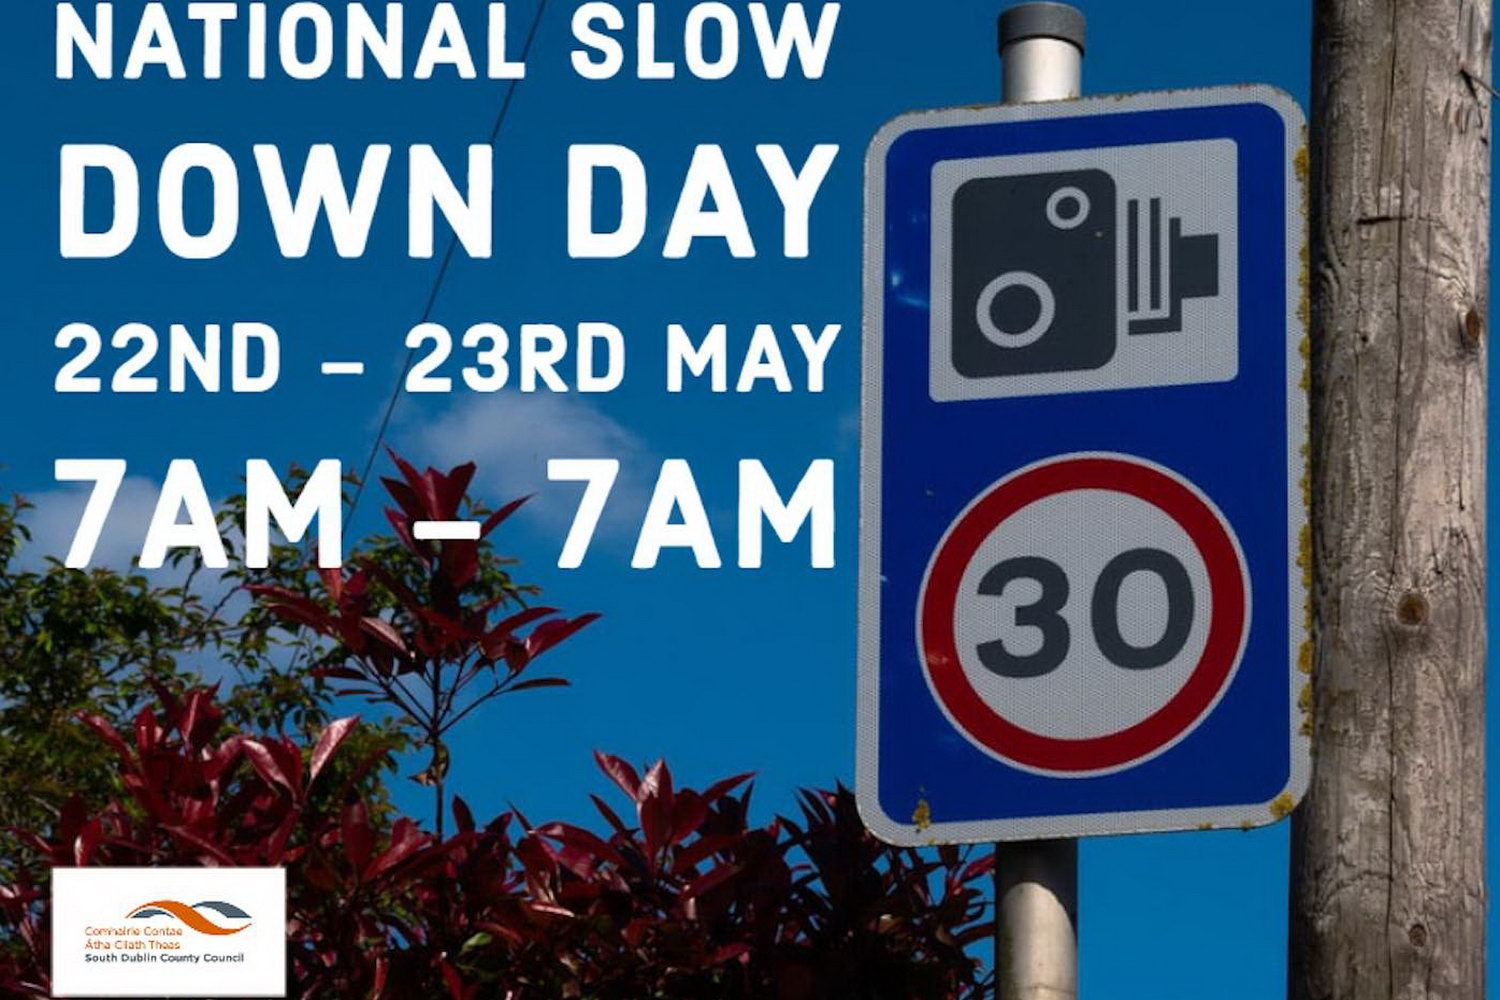 National Slow Down Day is Friday, 22nd May